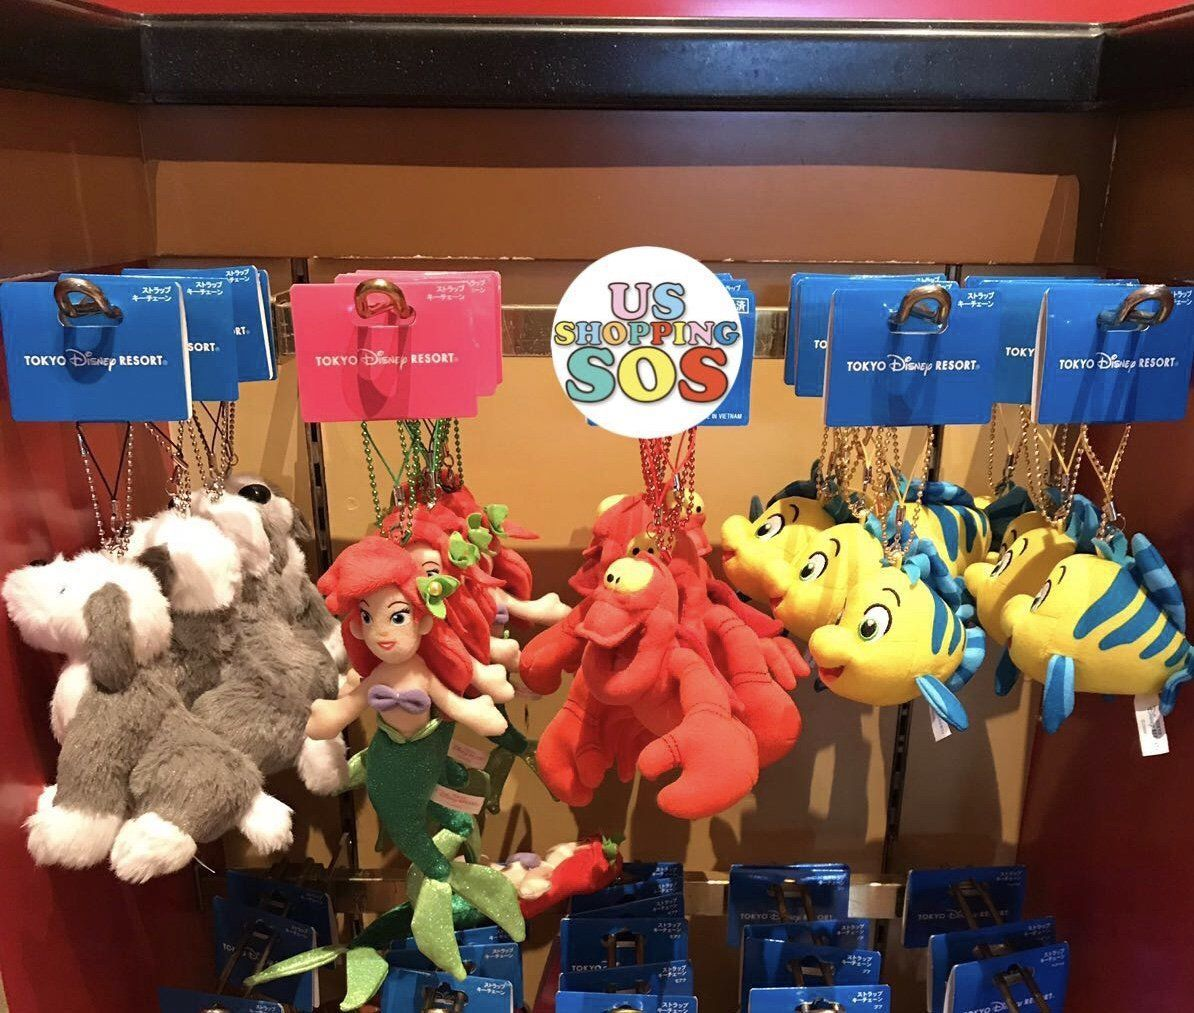 TDR - Plush Keychain from The Little Mermaid